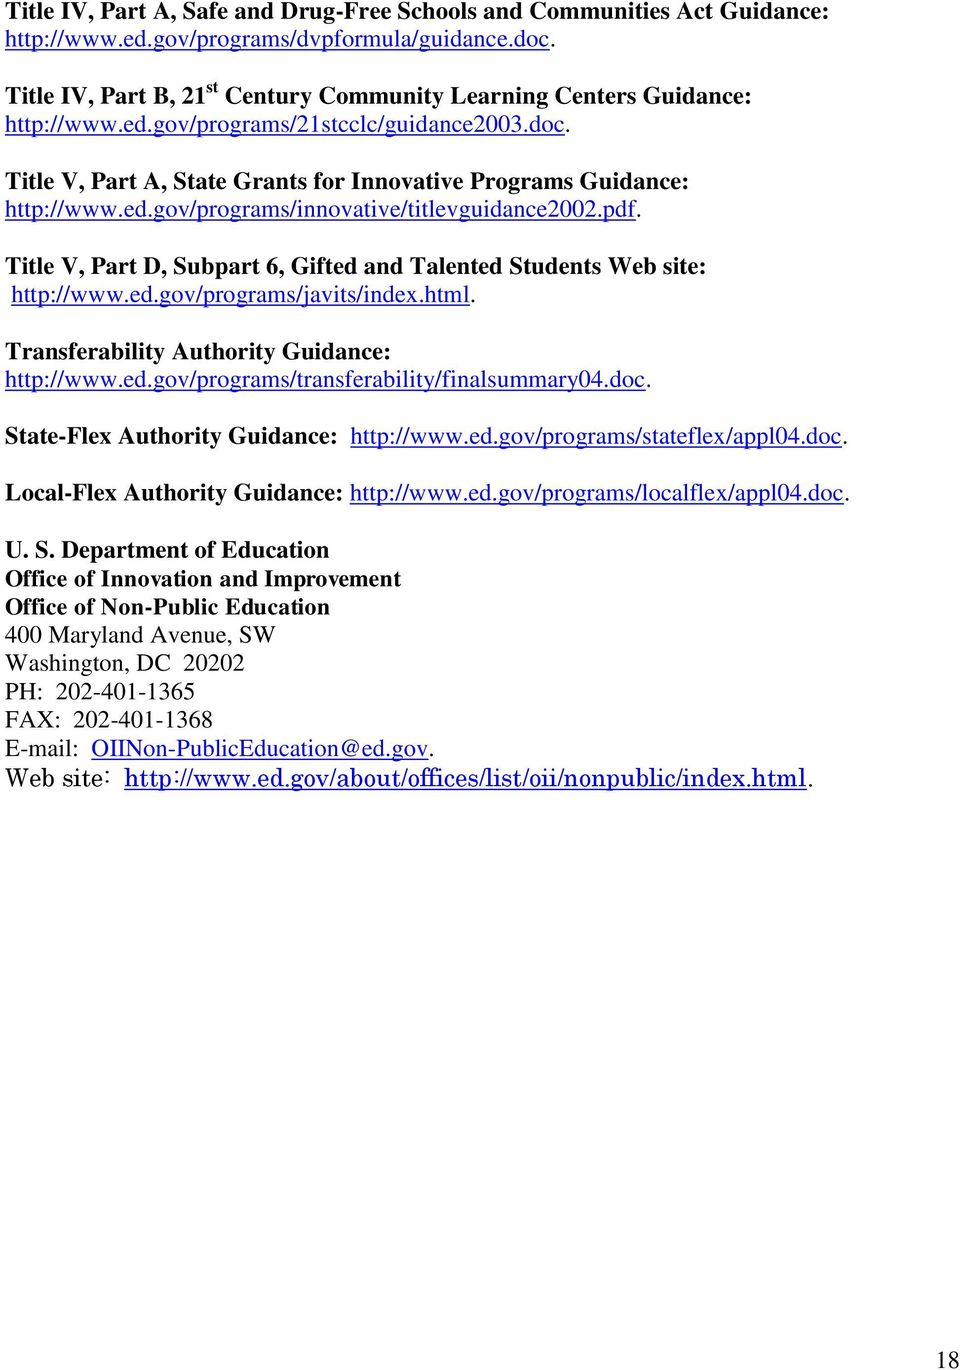 ed.gov/programs/innovative/titlevguidance2002.pdf. Title V, Part D, Subpart 6, Gifted and Talented Students Web site: http://www.ed.gov/programs/javits/index.html.